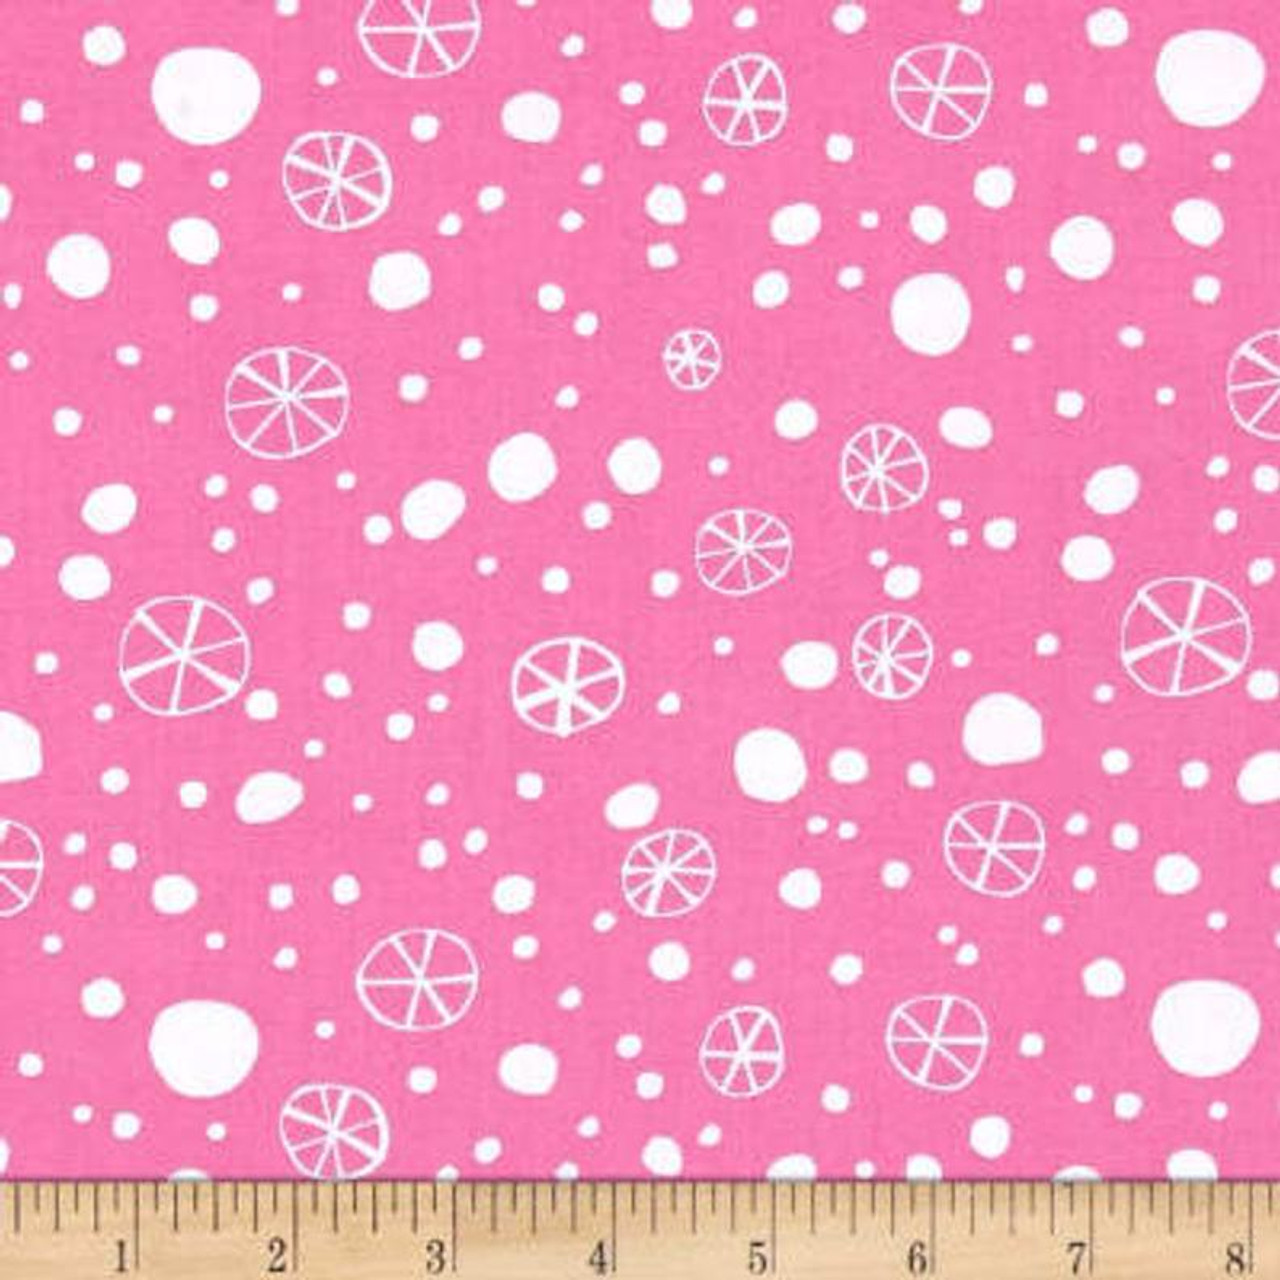 David Walker PWDW131 Merry Christmas Snowflakes Pink Fabric By Yd